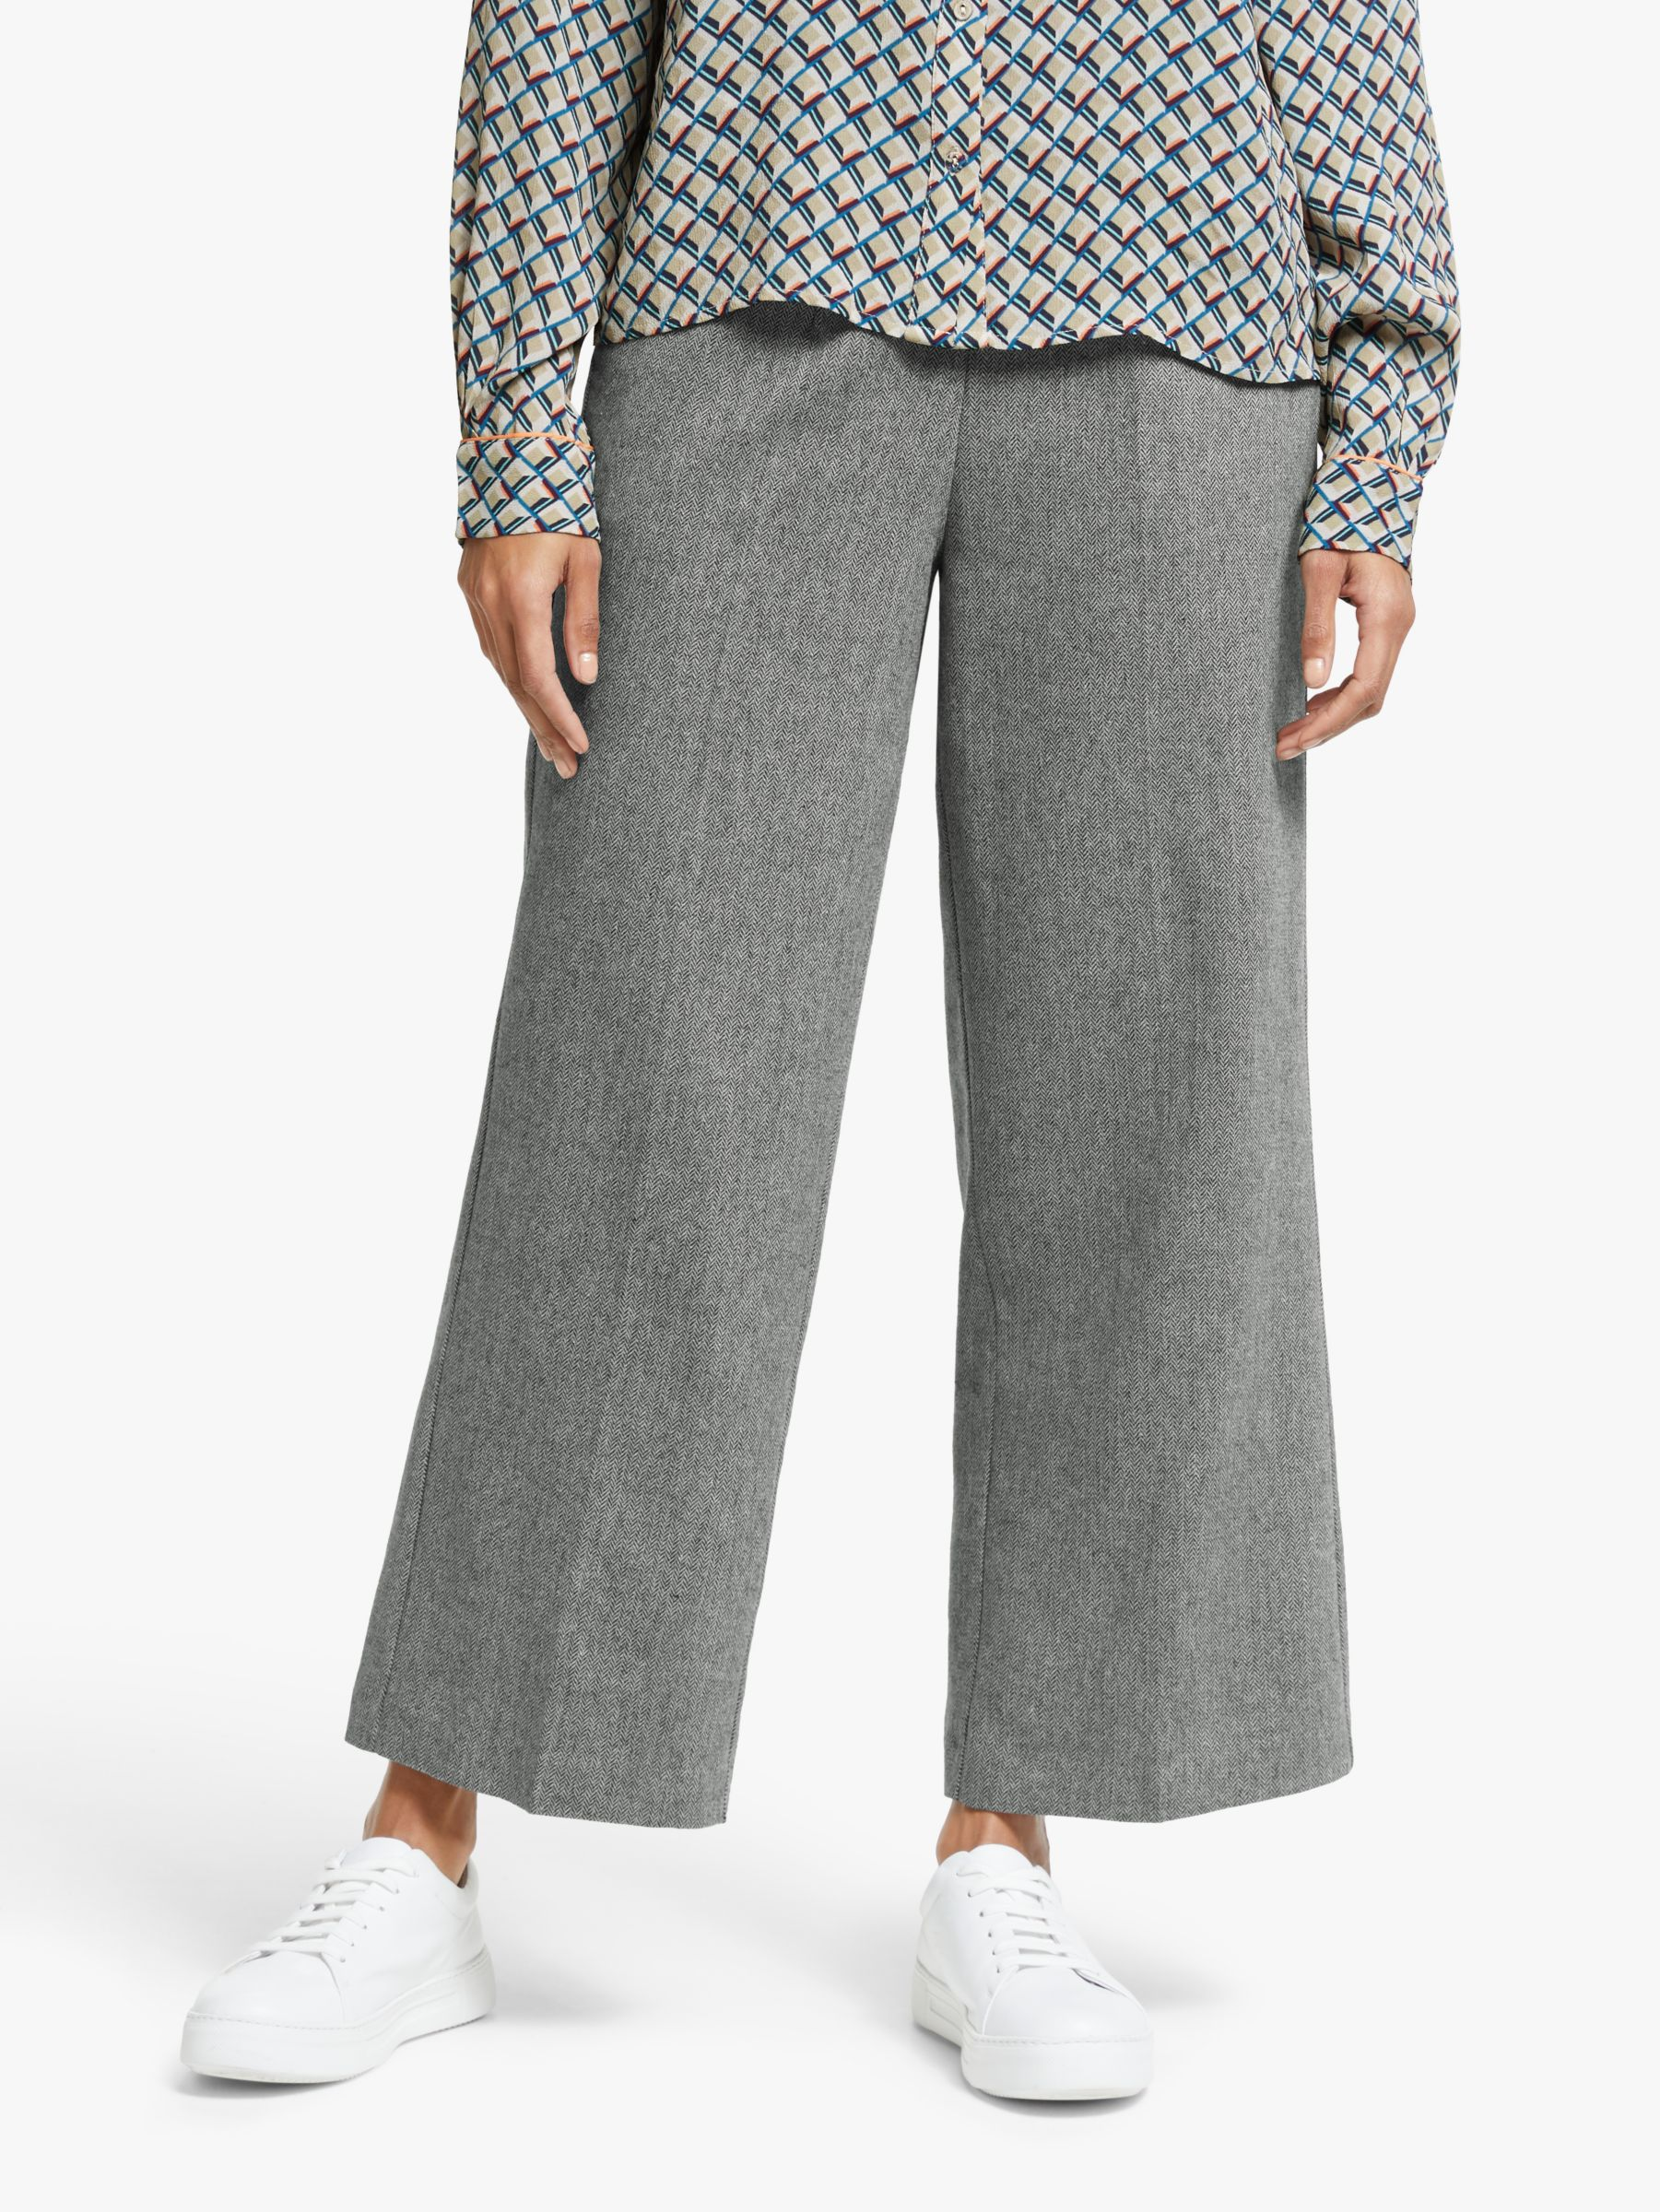 Y.a.s Y.A.S Nana High Waisted Cropped Trousers, Grey